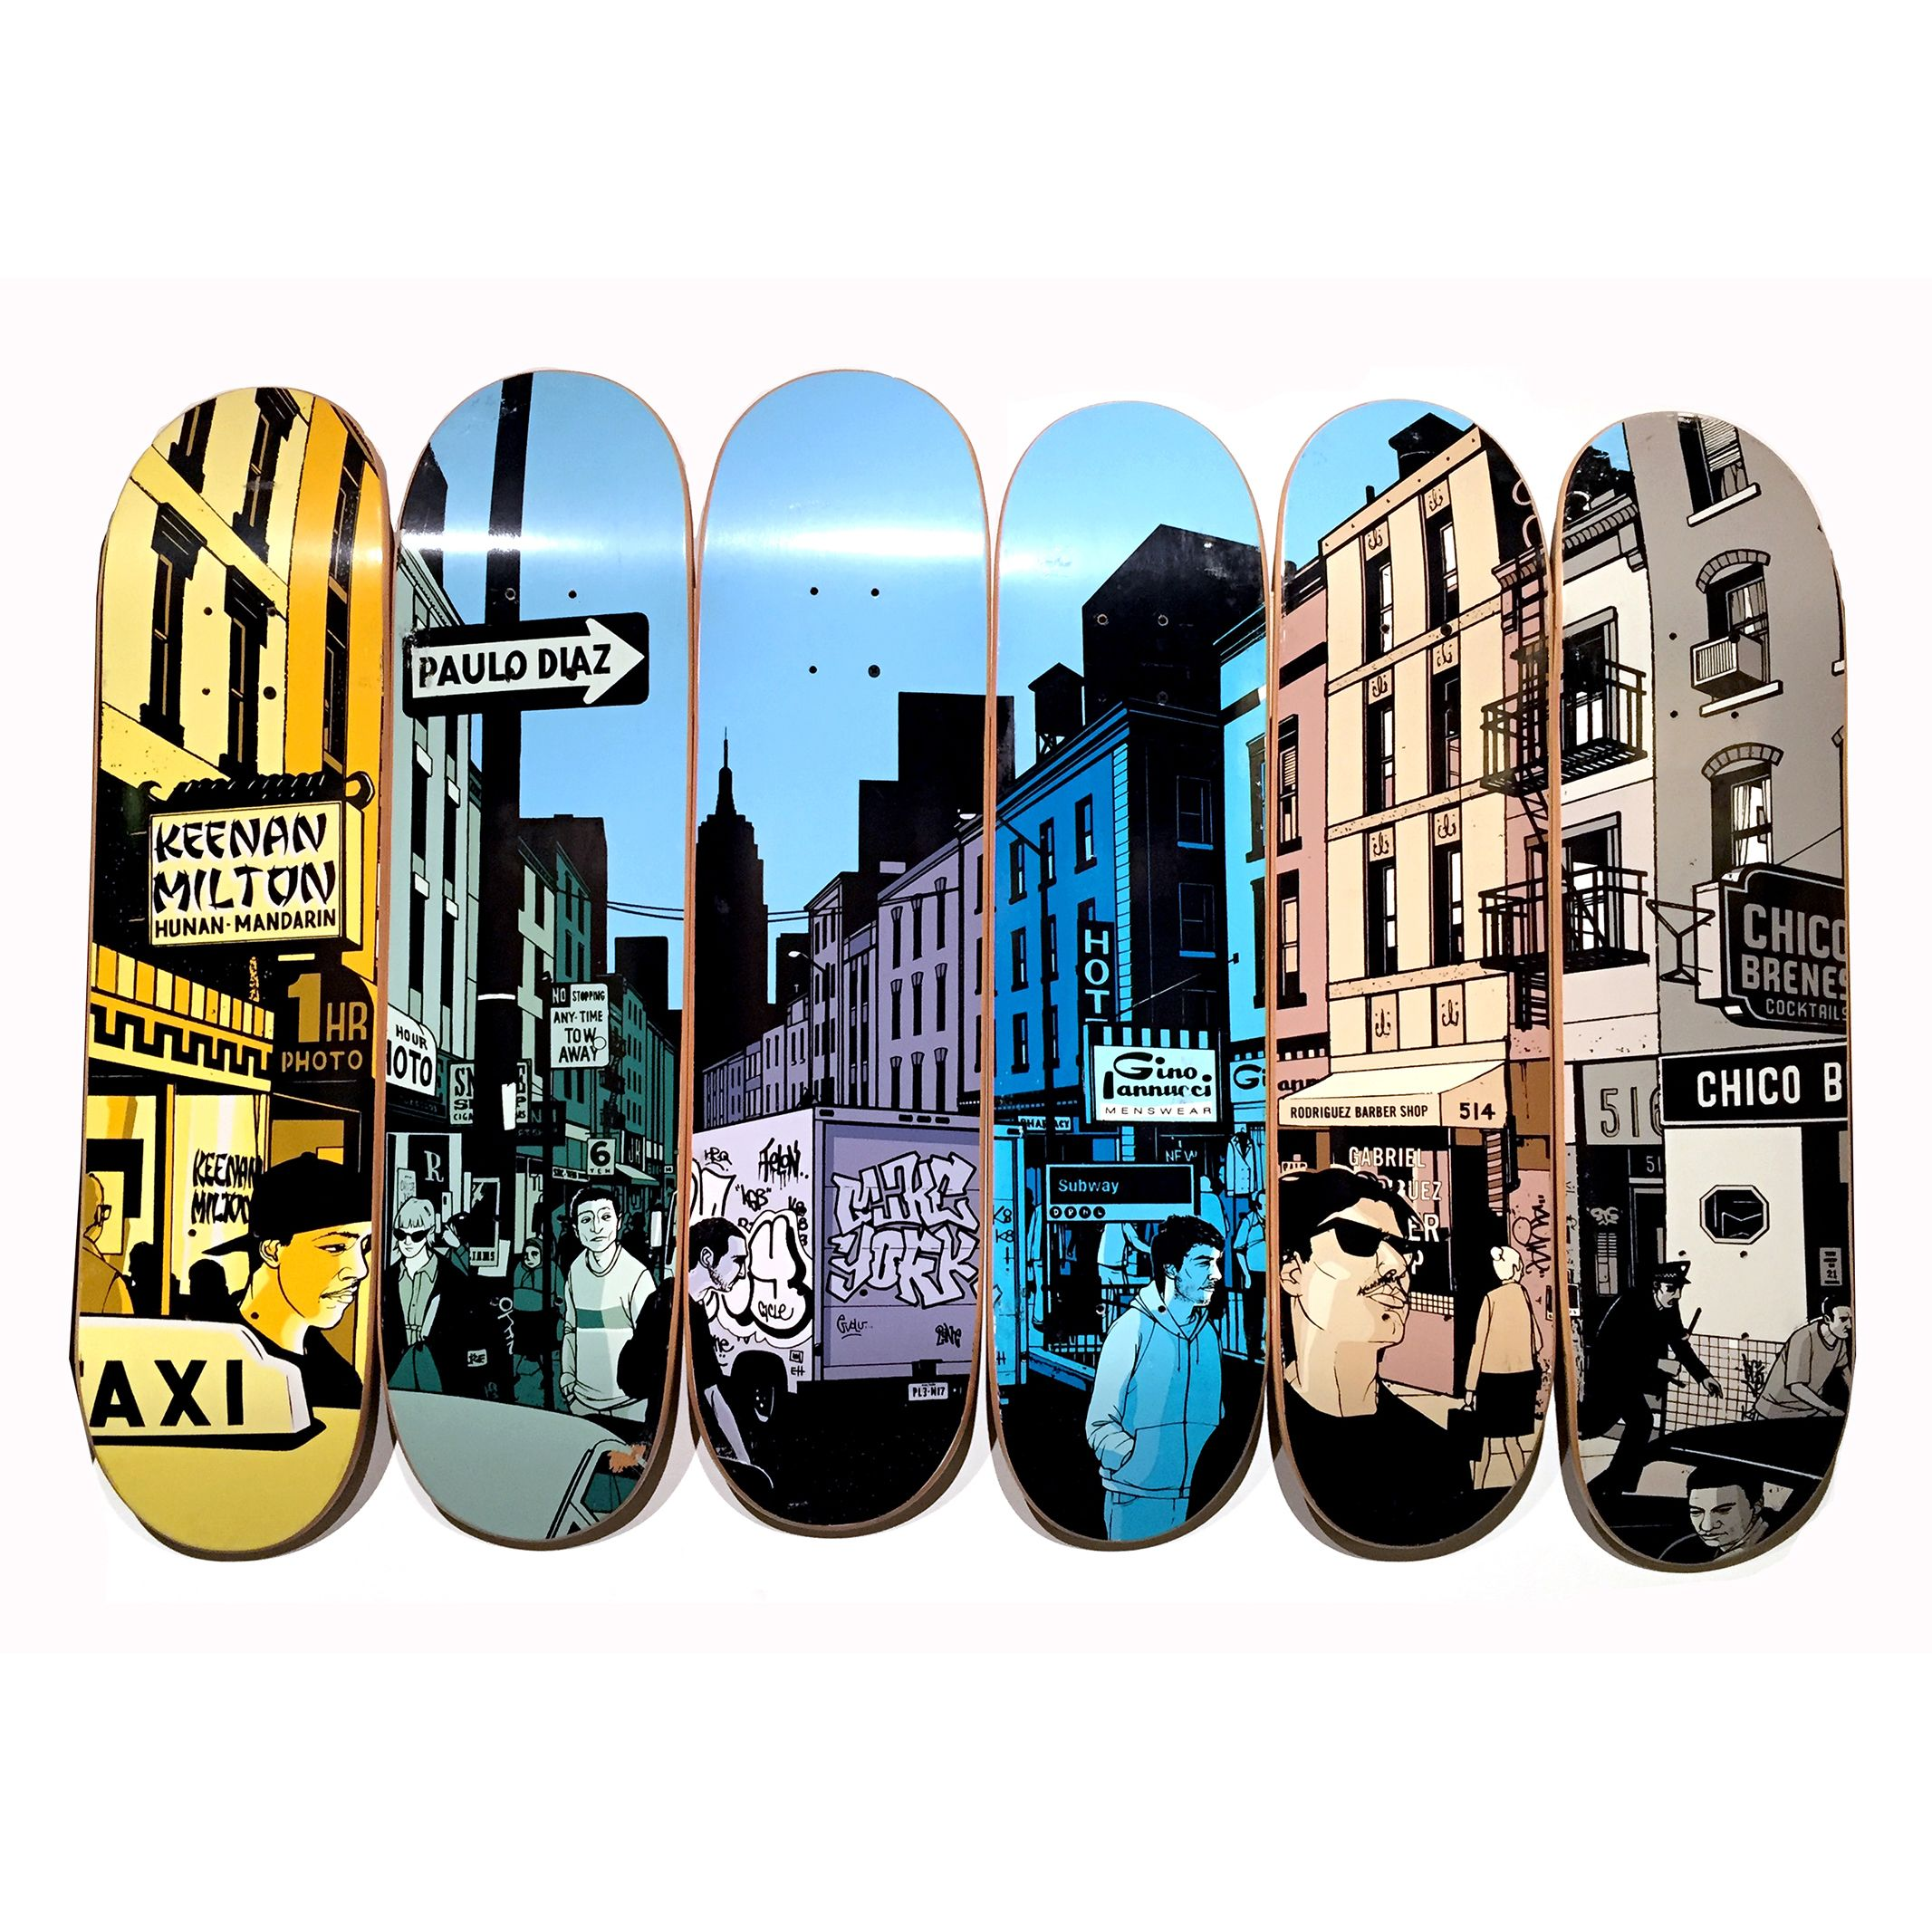 Skateboard Skateboard Chocolate Skateboards City Scene Evanhecox My Ride